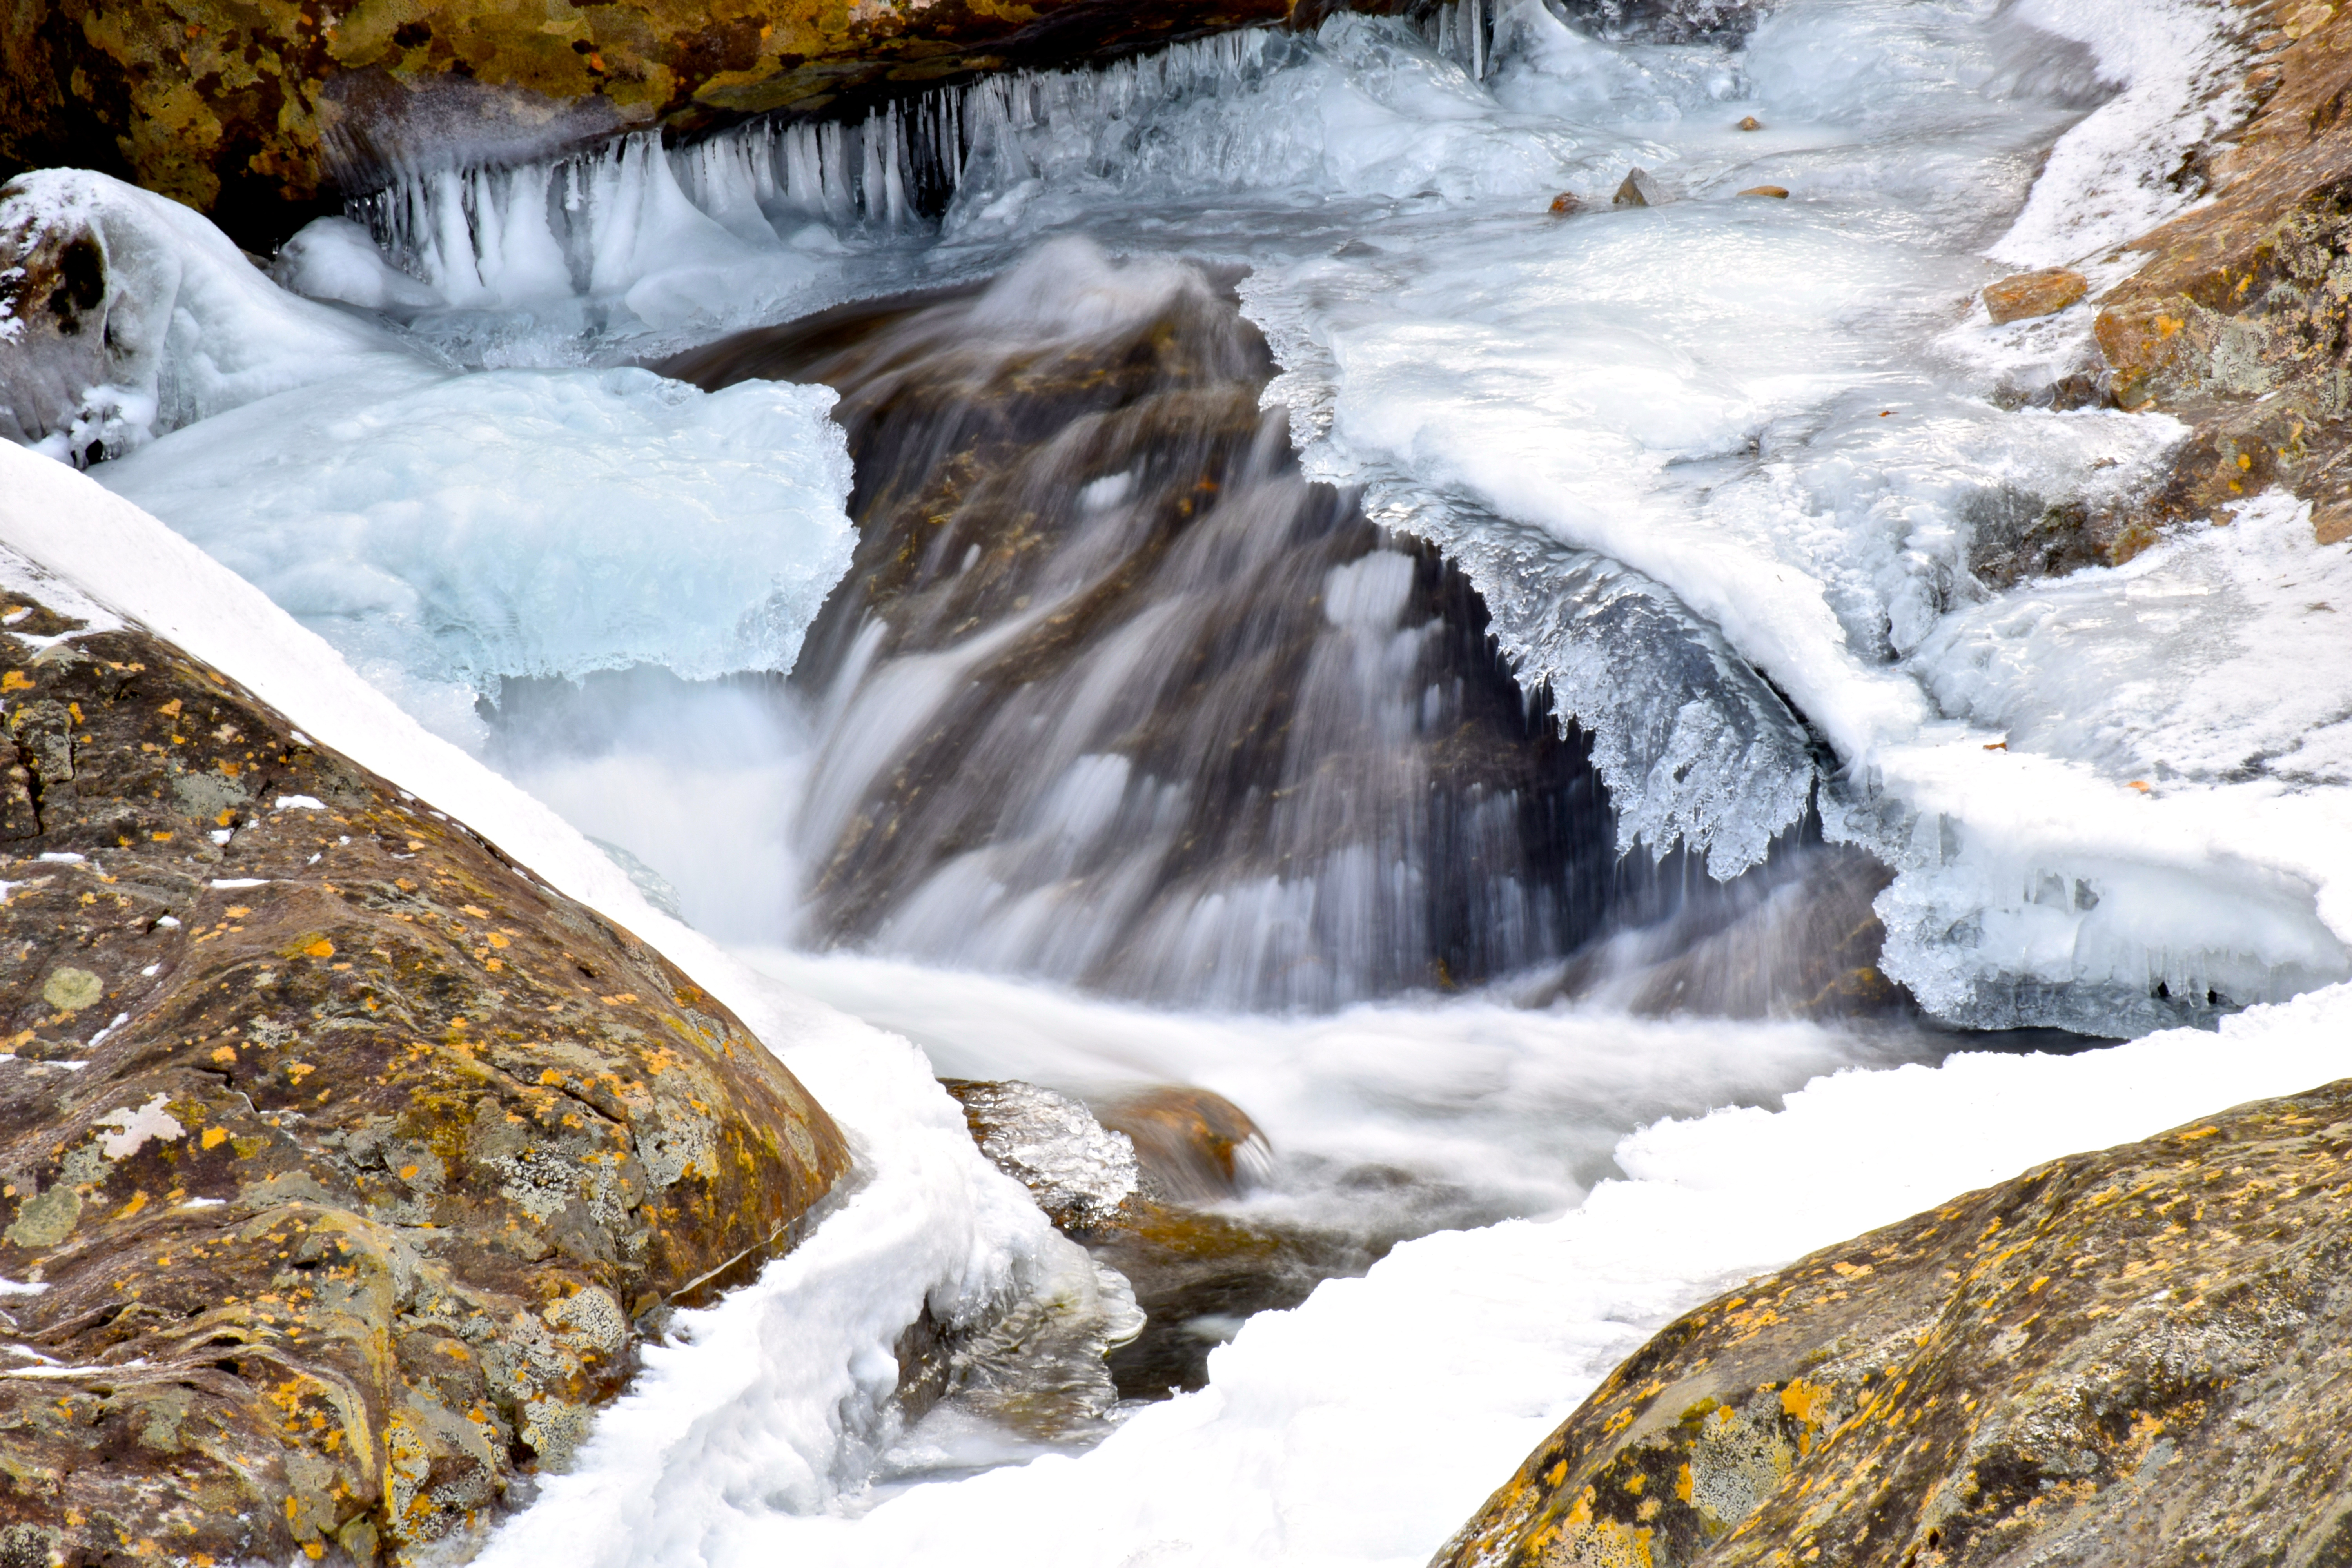 Rock, Water, Ice, and Snow